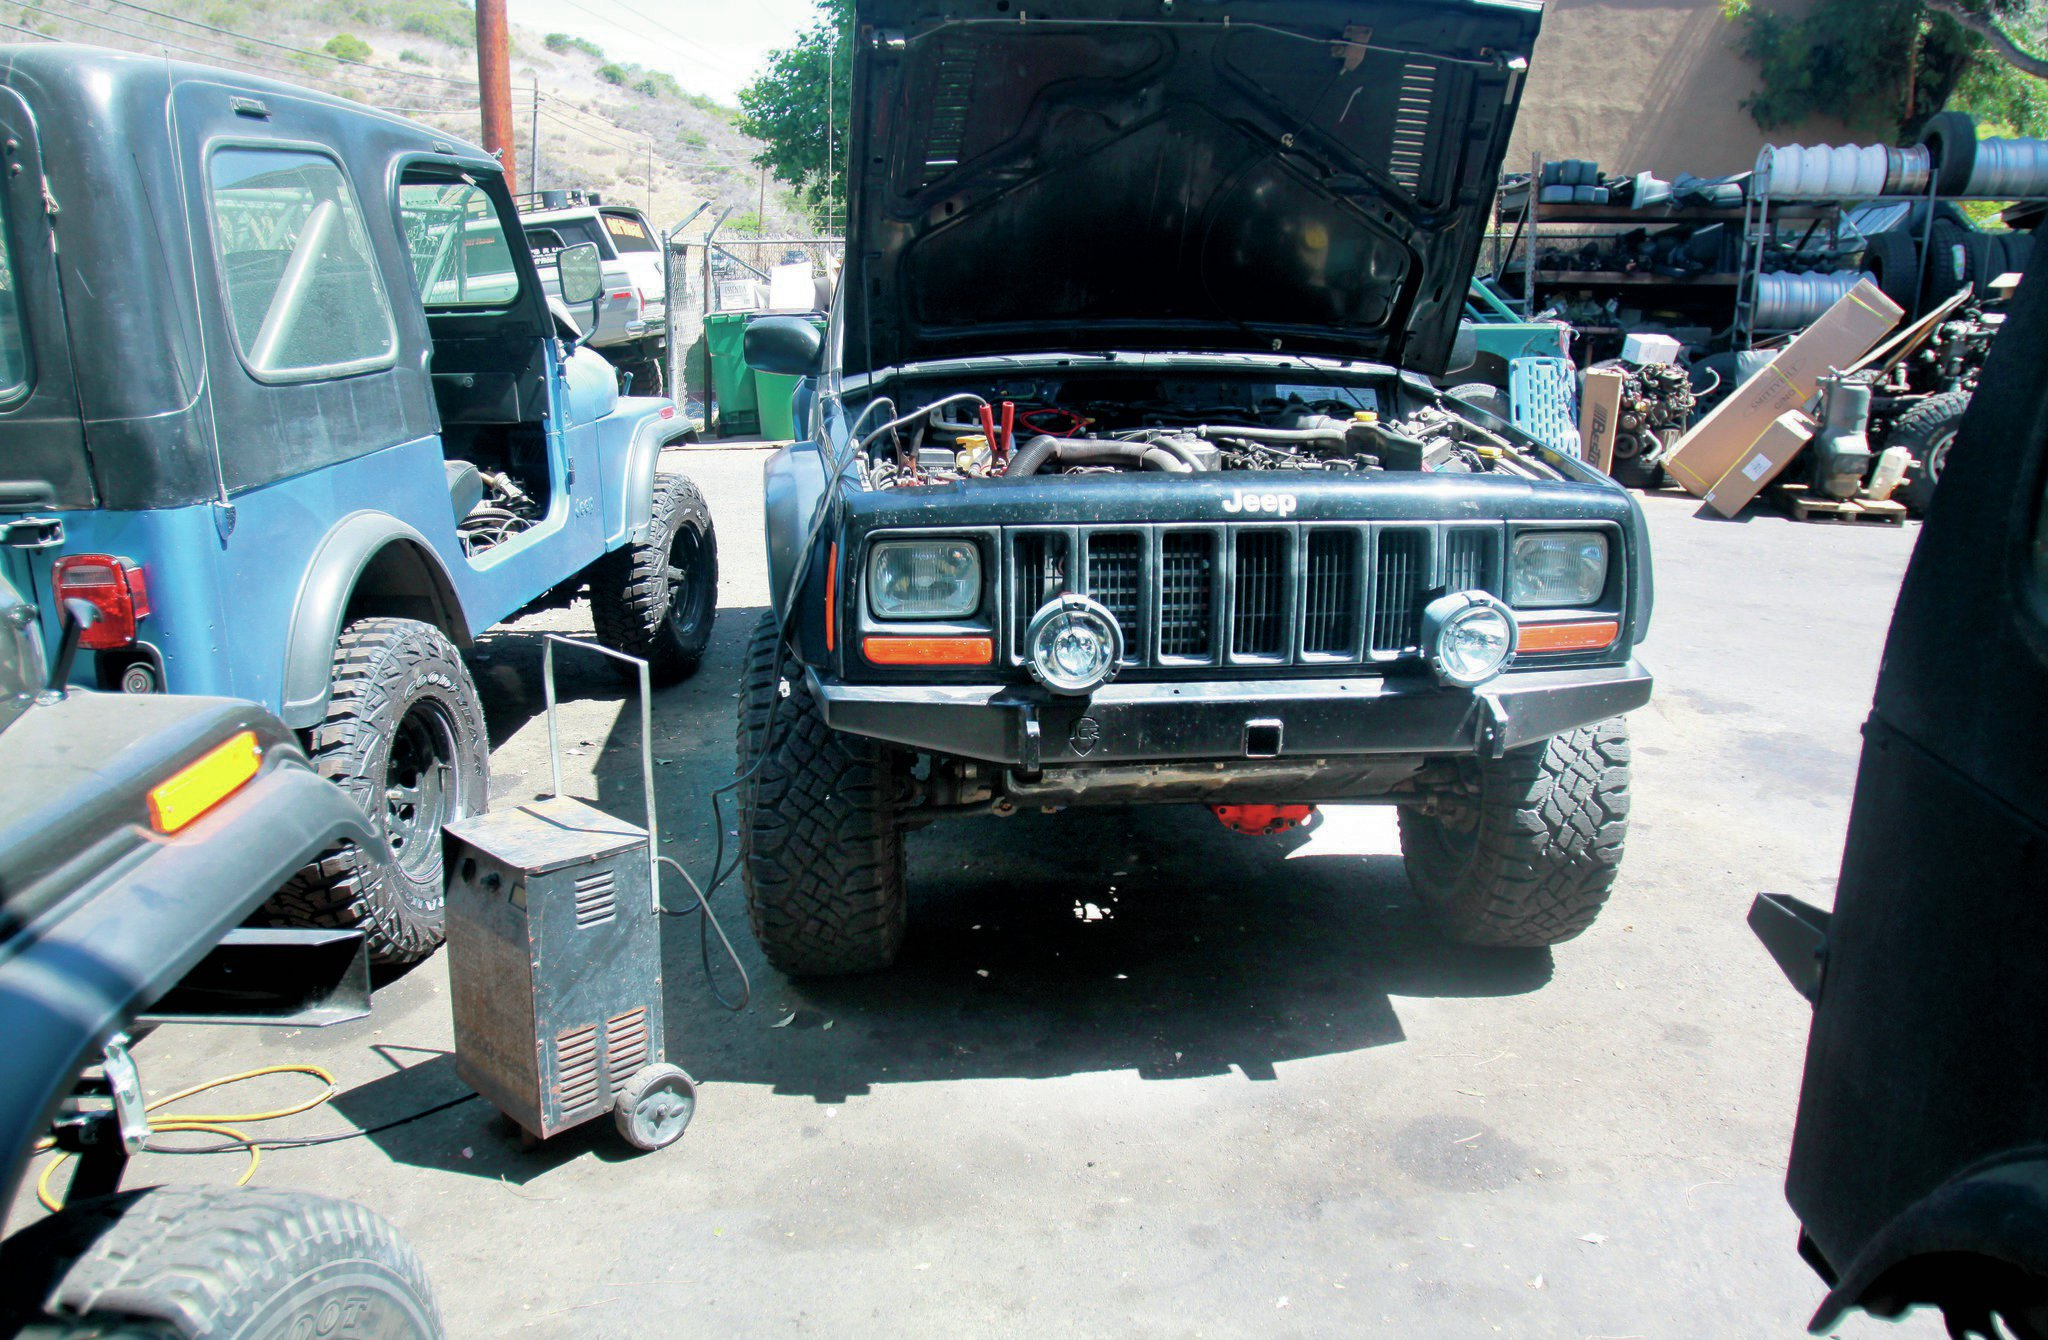 As it turns out, our nearly dead battery wasn't too happy being hooked up to the shop charger on the high amperage setting. We thought for sure the battery was dead, but we later tested it, and it came out just fine. Once it was charged, the tech decided just to try to swap coils again. The Jeep fired right up. It turns out we had not one, but two bad coils, both of which died from sitting and doing nothing. We still aren't sure how that is possible.